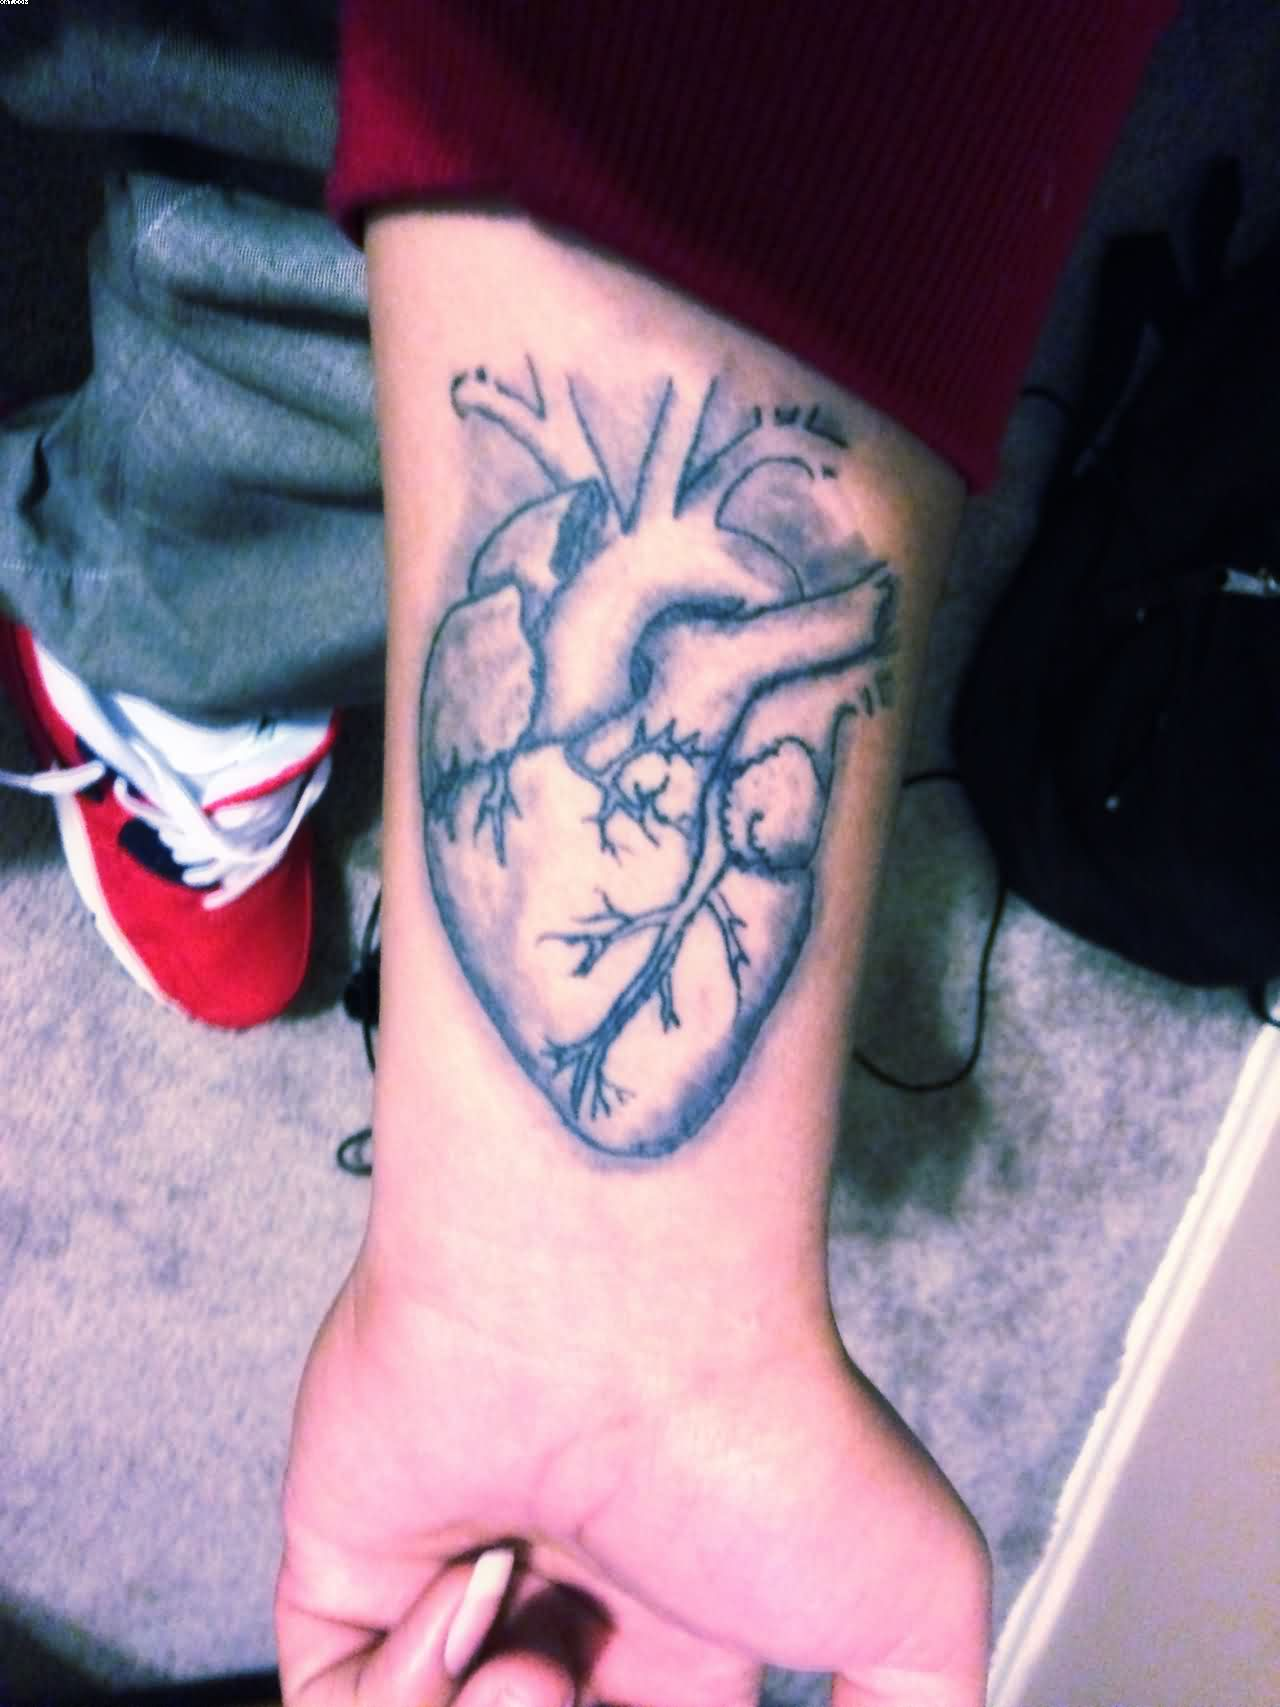 Human Heart Tattoo On The Wrist